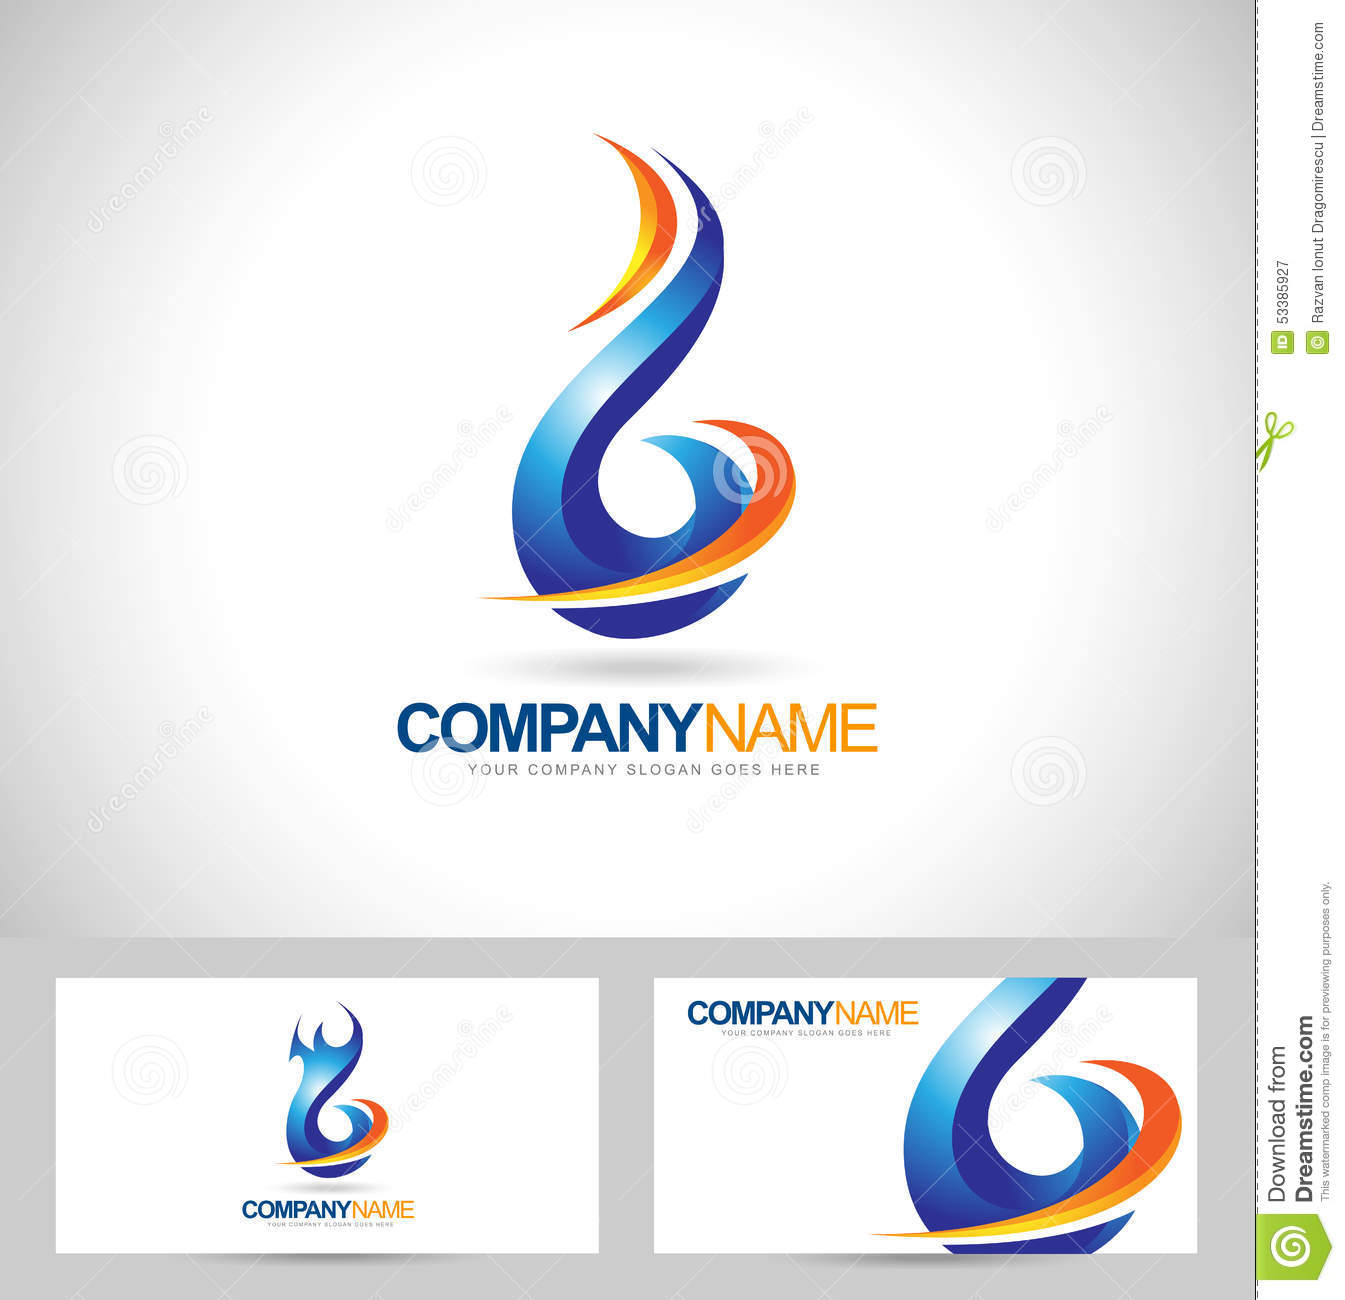 Flame stock illustrations 108862 flame stock illustrations blue flame logo concept design creative flame icon and business card template royalty free buycottarizona